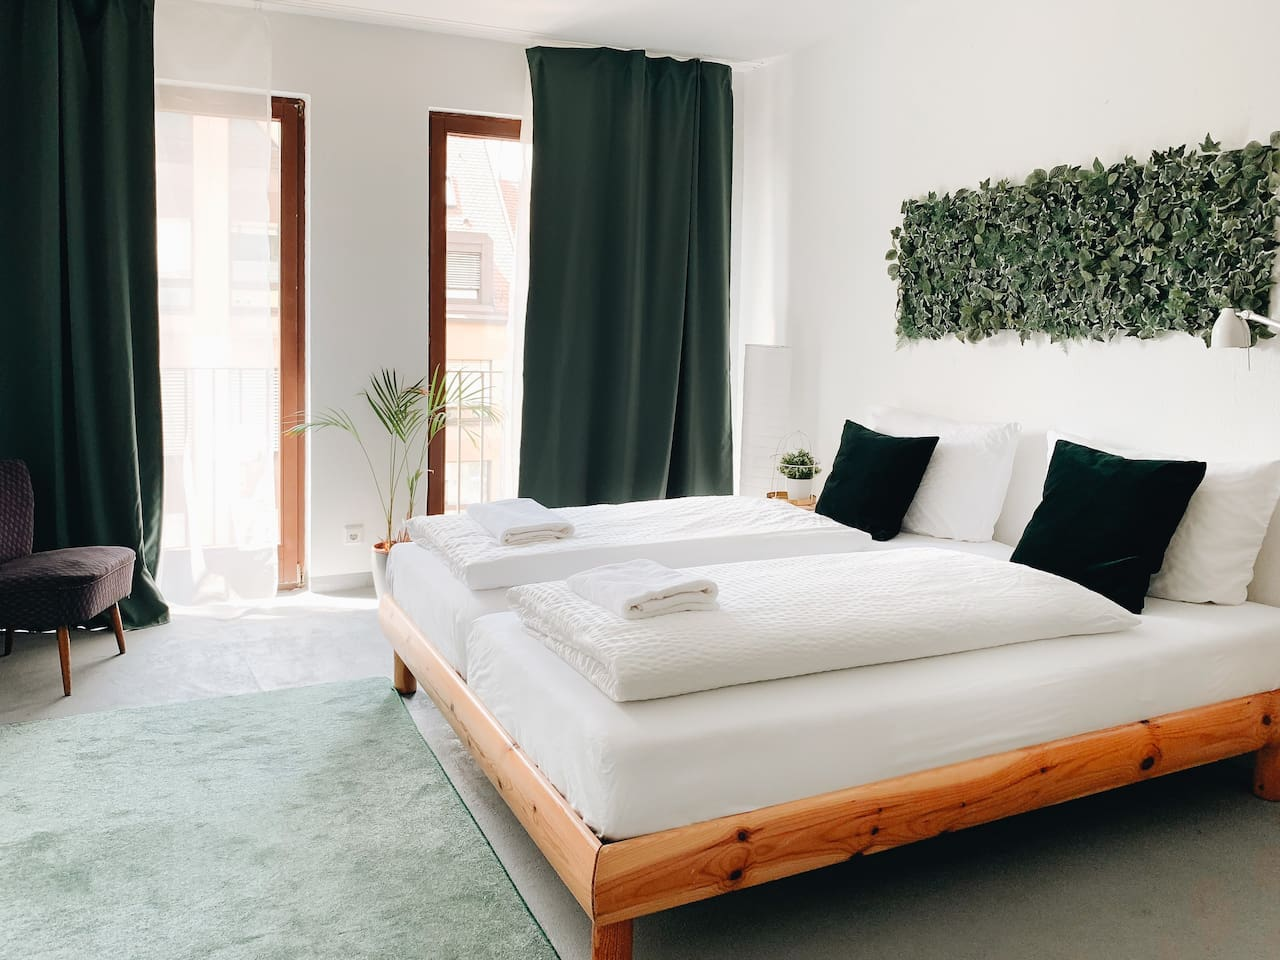 The bright studio apartment with large windows and a jungle theme